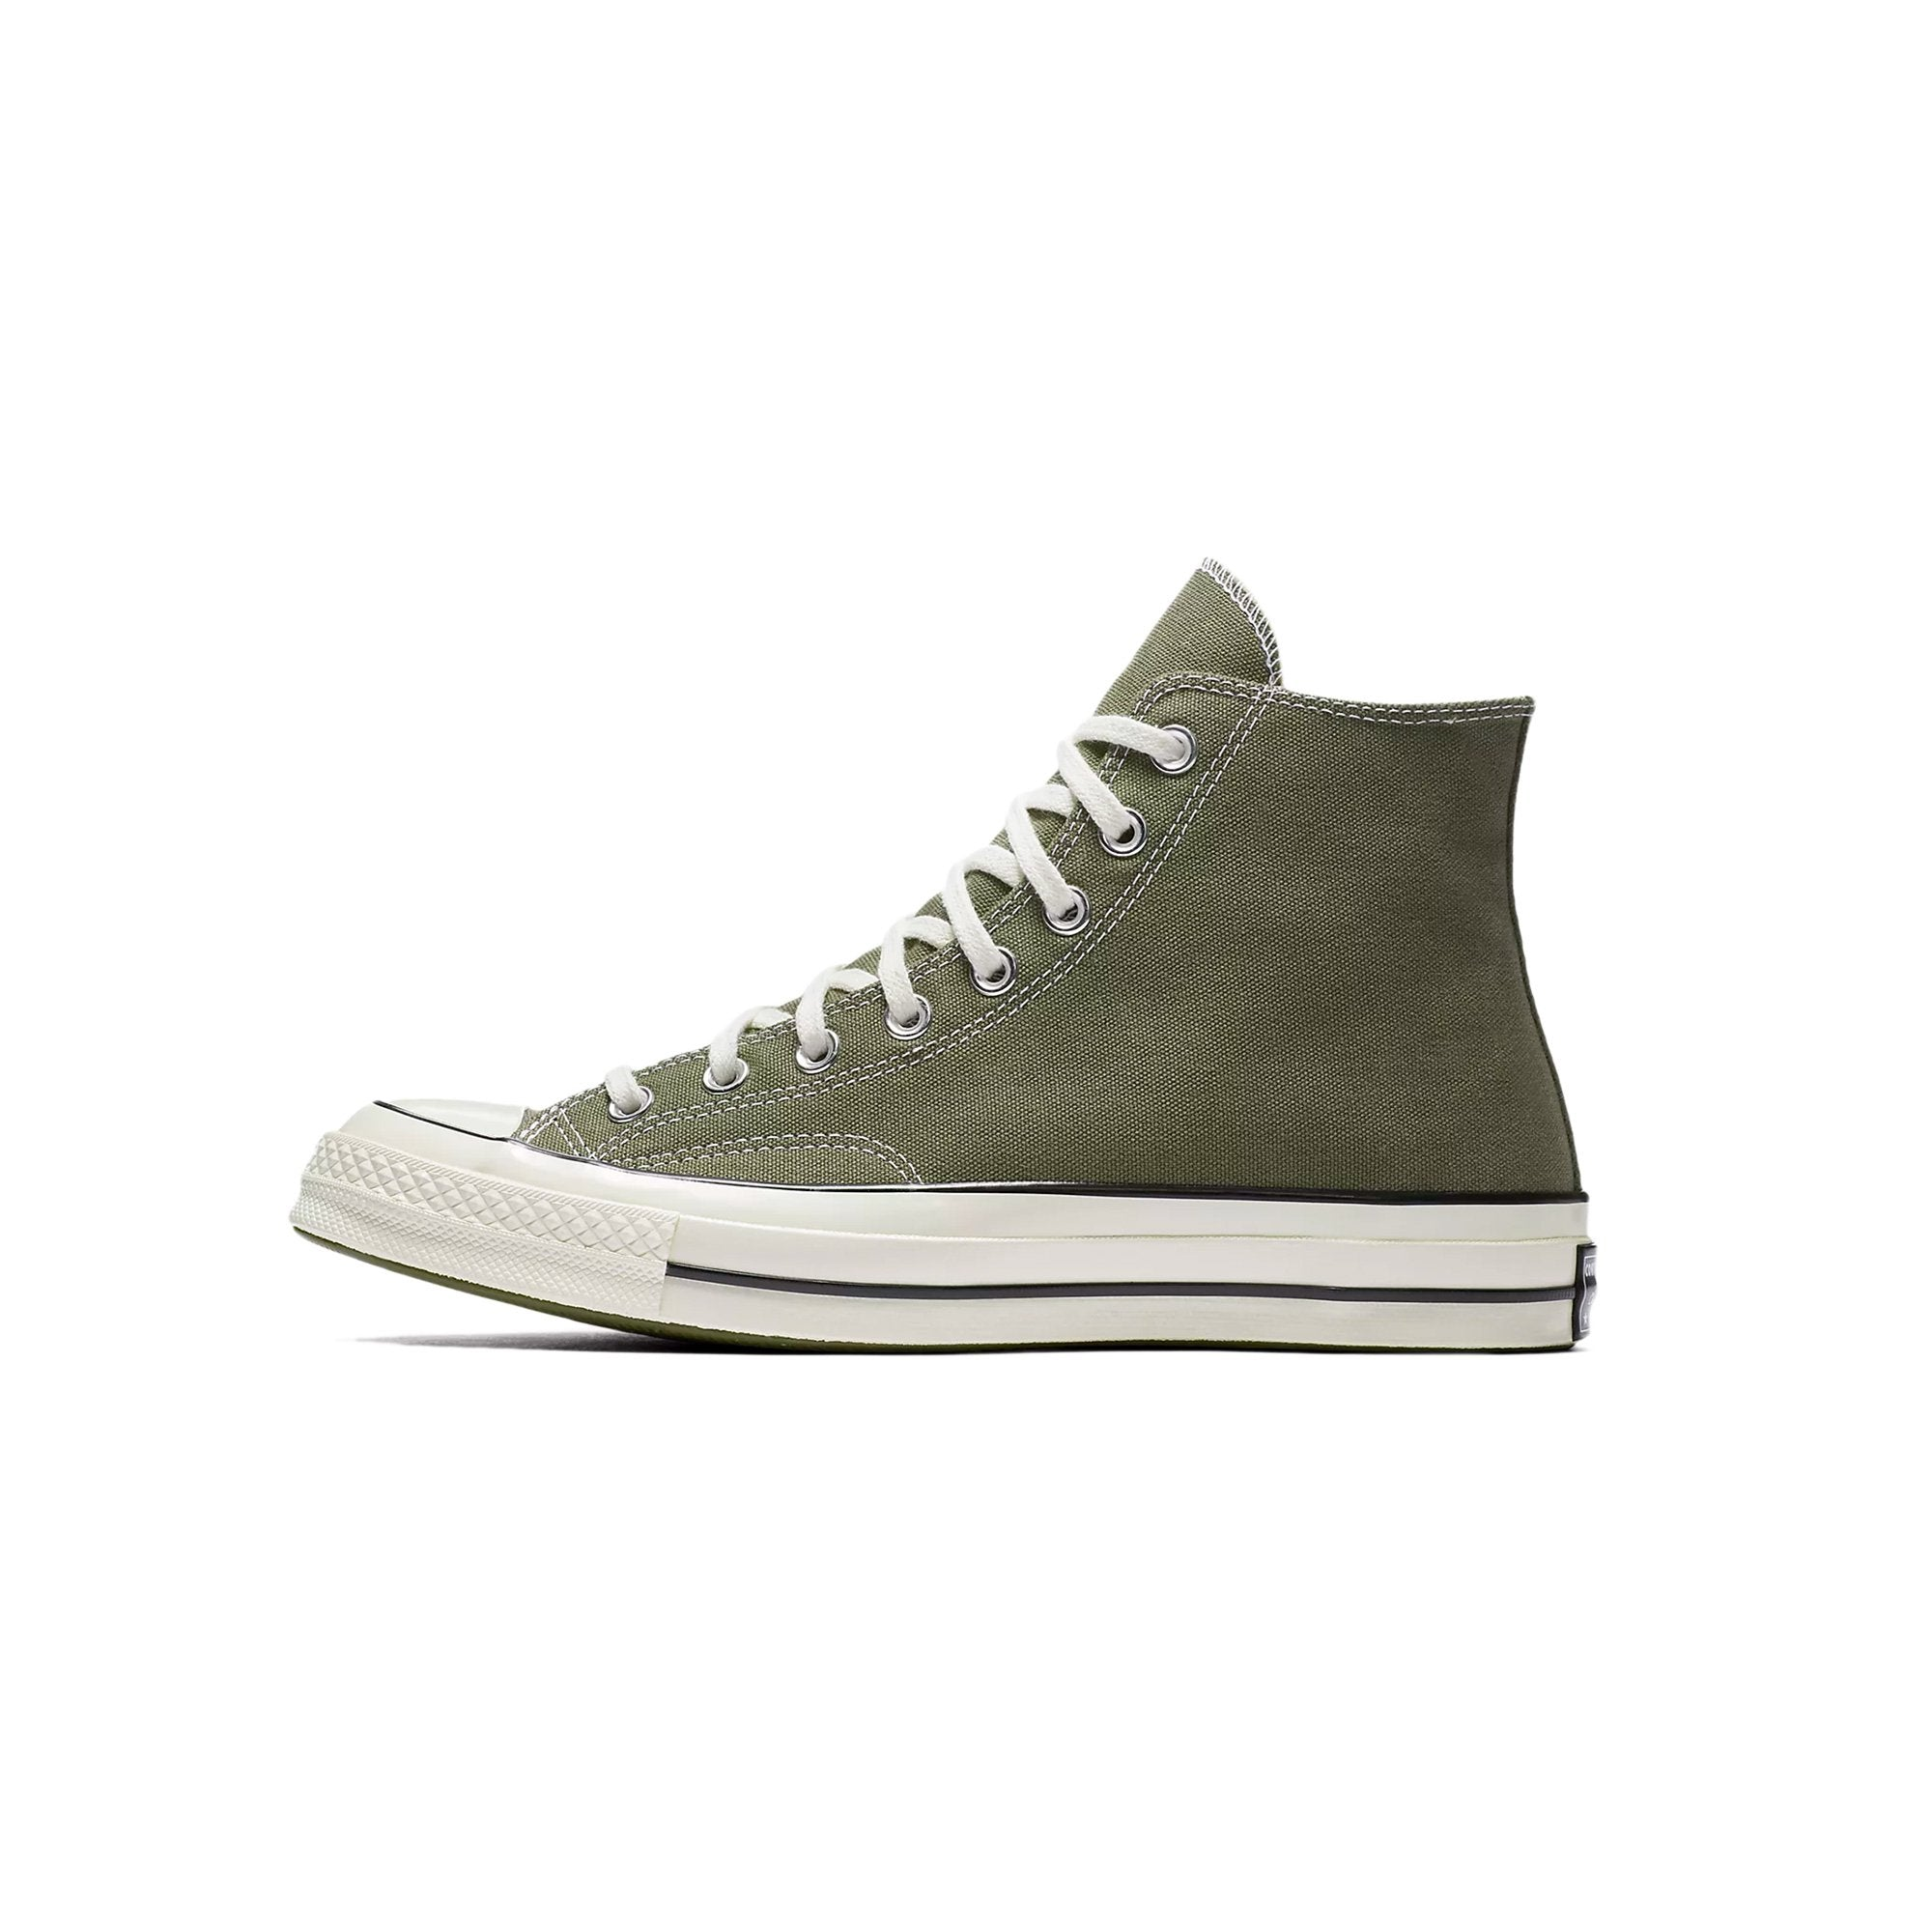 3ca92b4d39f9 Details about Converse Chuck Taylor All Star 70 High Top Field Surplus Green  White 162052C